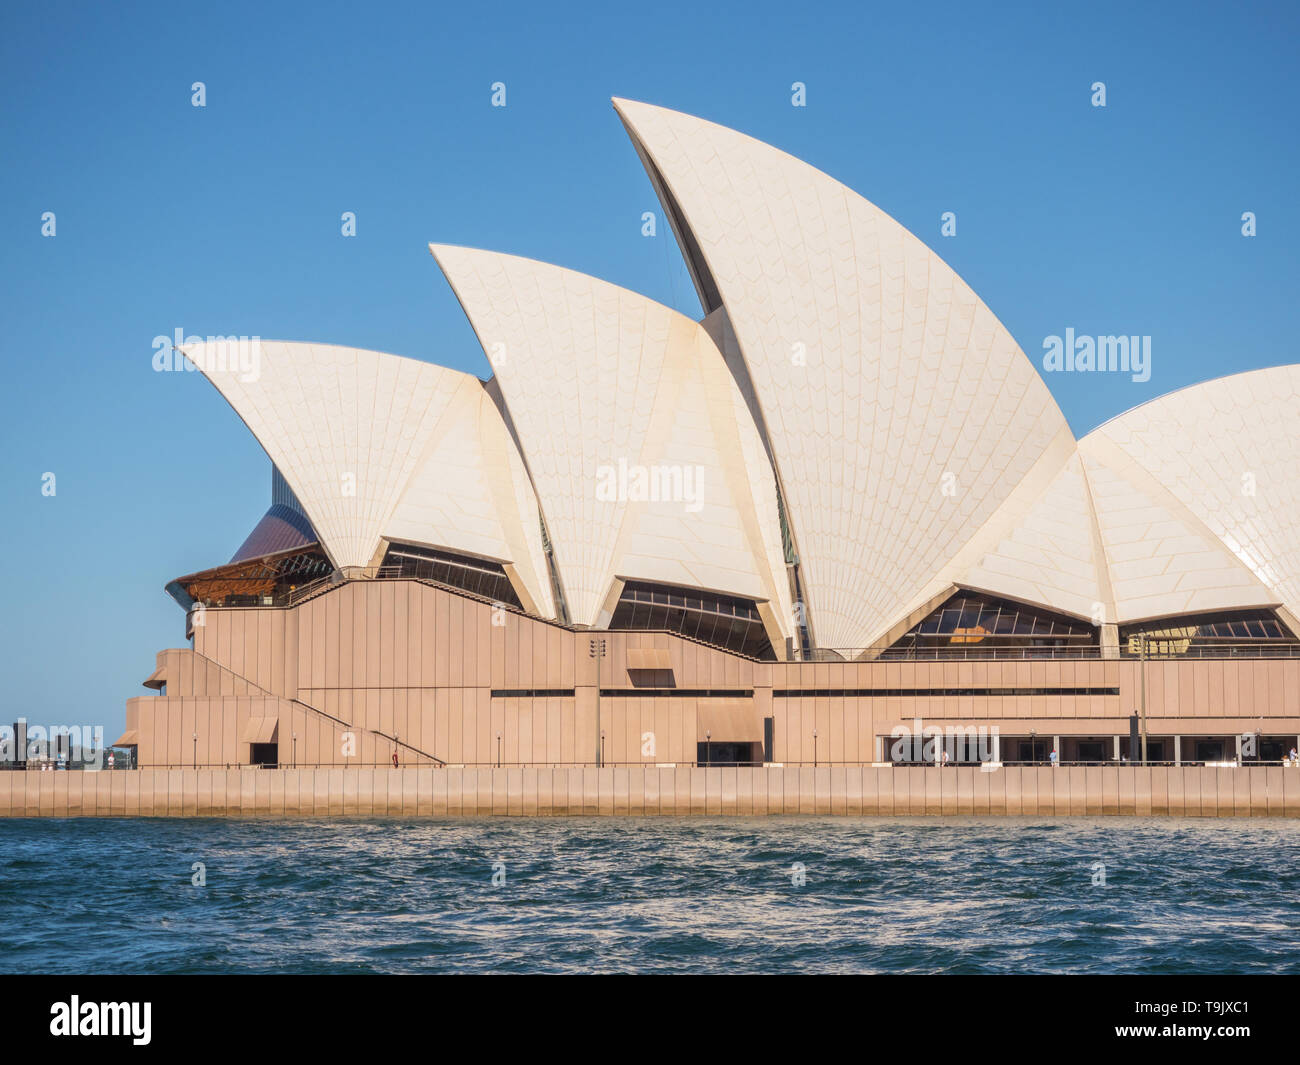 SYDNEY, AUSTRALIA - FEBRUARY 11, 2019: With its interlocking roof or 'shells', Sydney Opera House is Australia's most recognisable building. Stock Photo